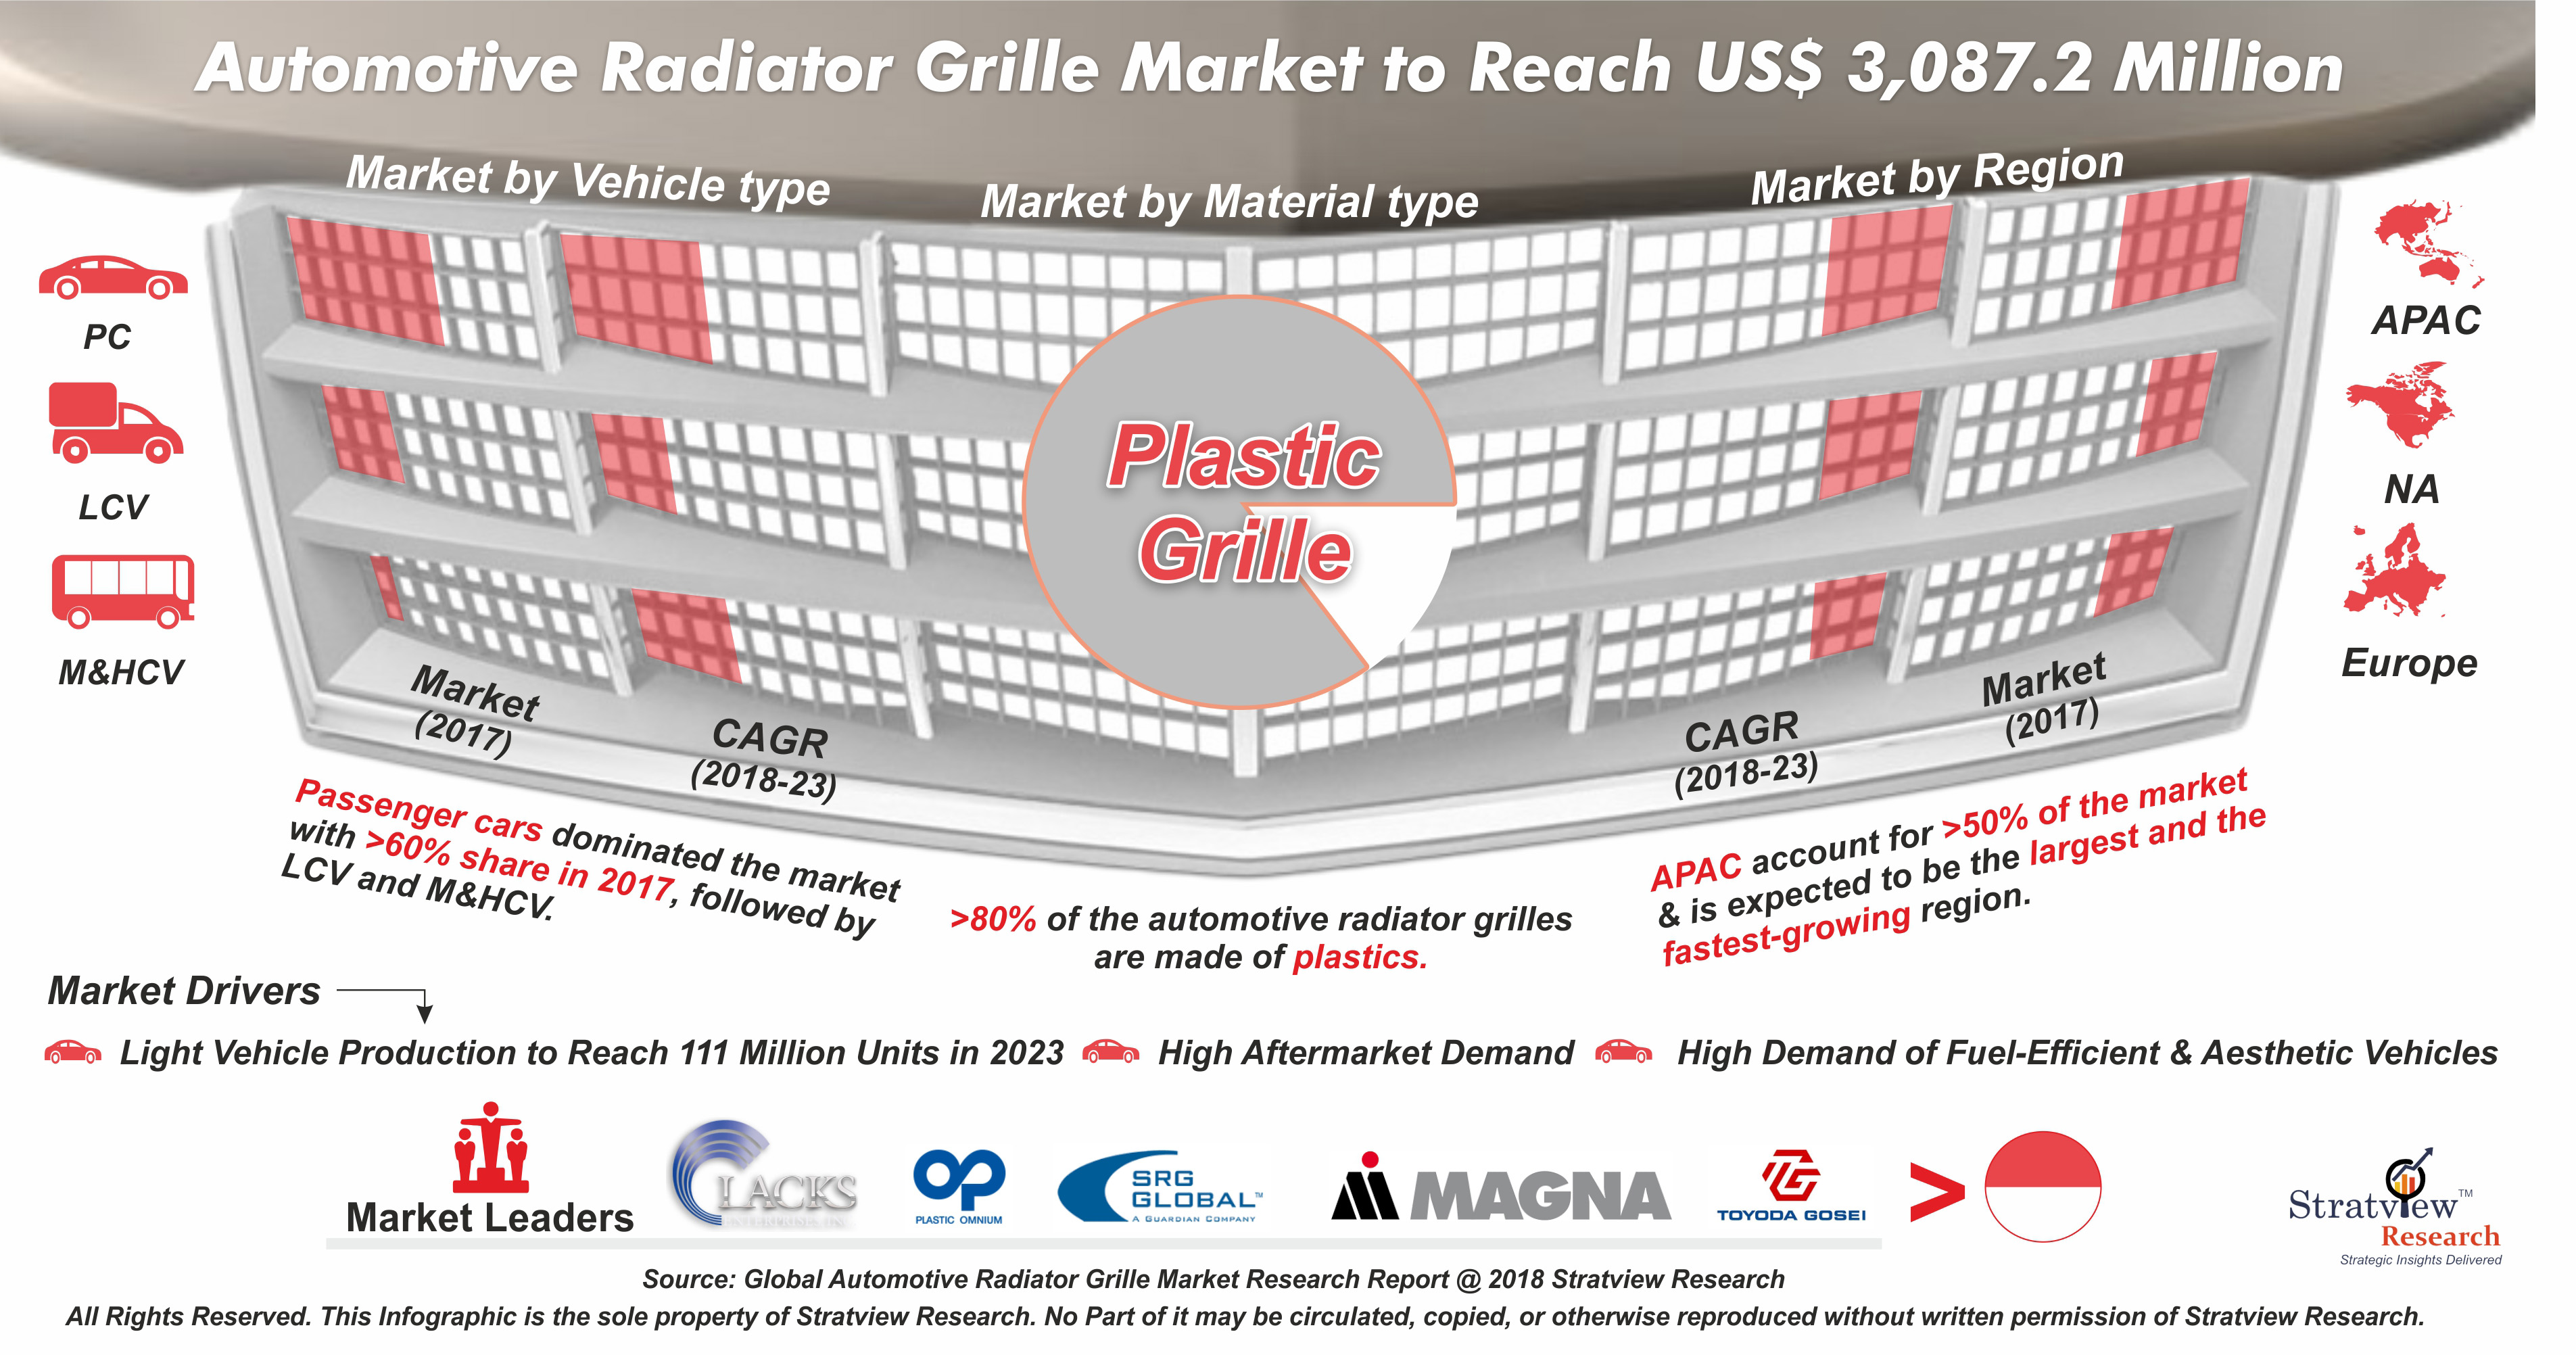 Automotive Radiator Grille Market